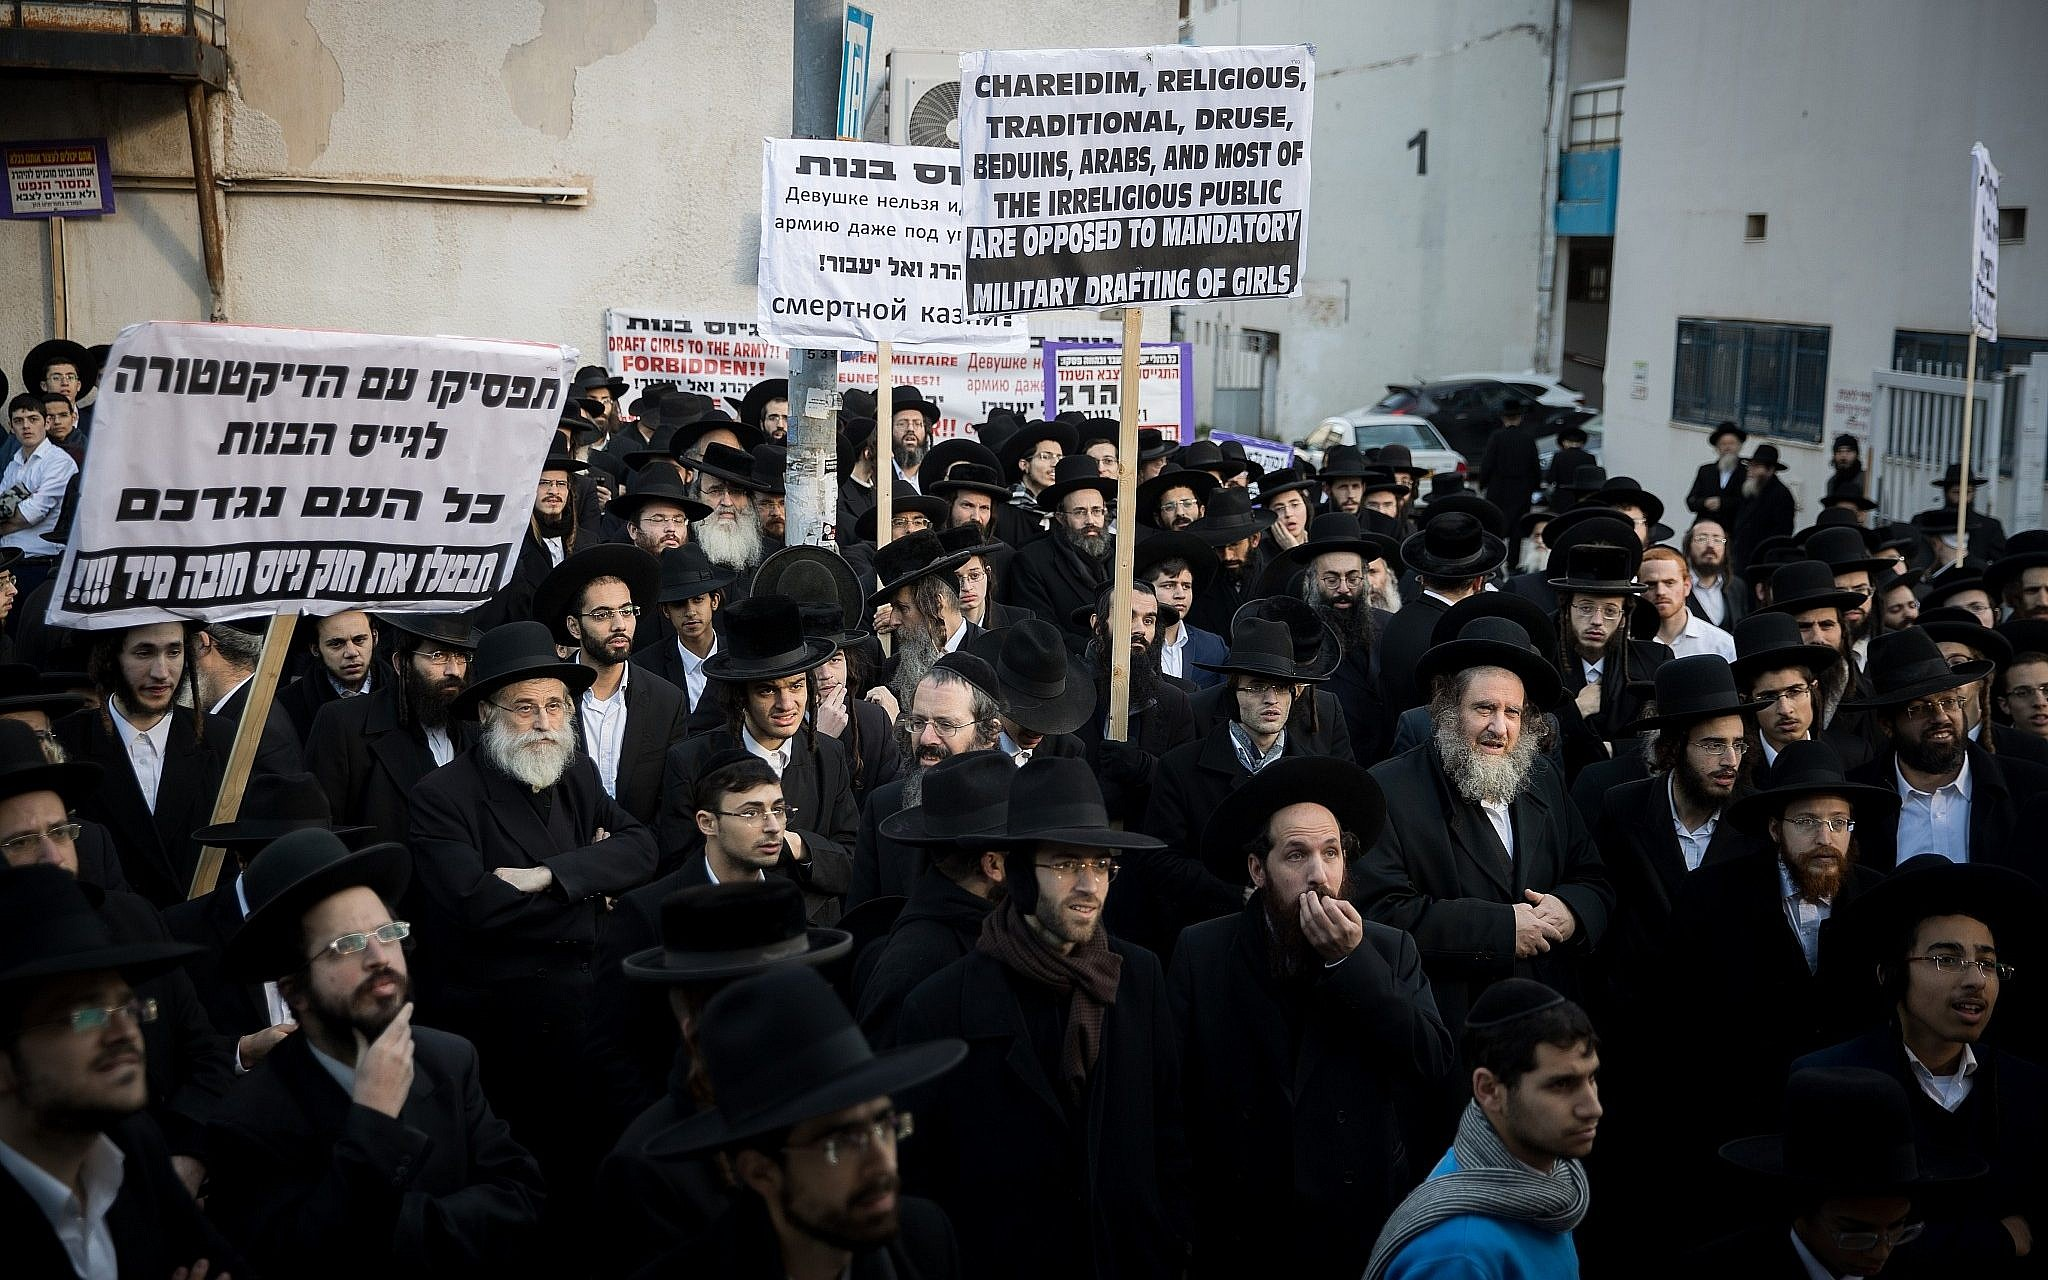 Haredi Jews In Israel: Ultra-Orthodox Integration Into Israeli Life Is Slowing